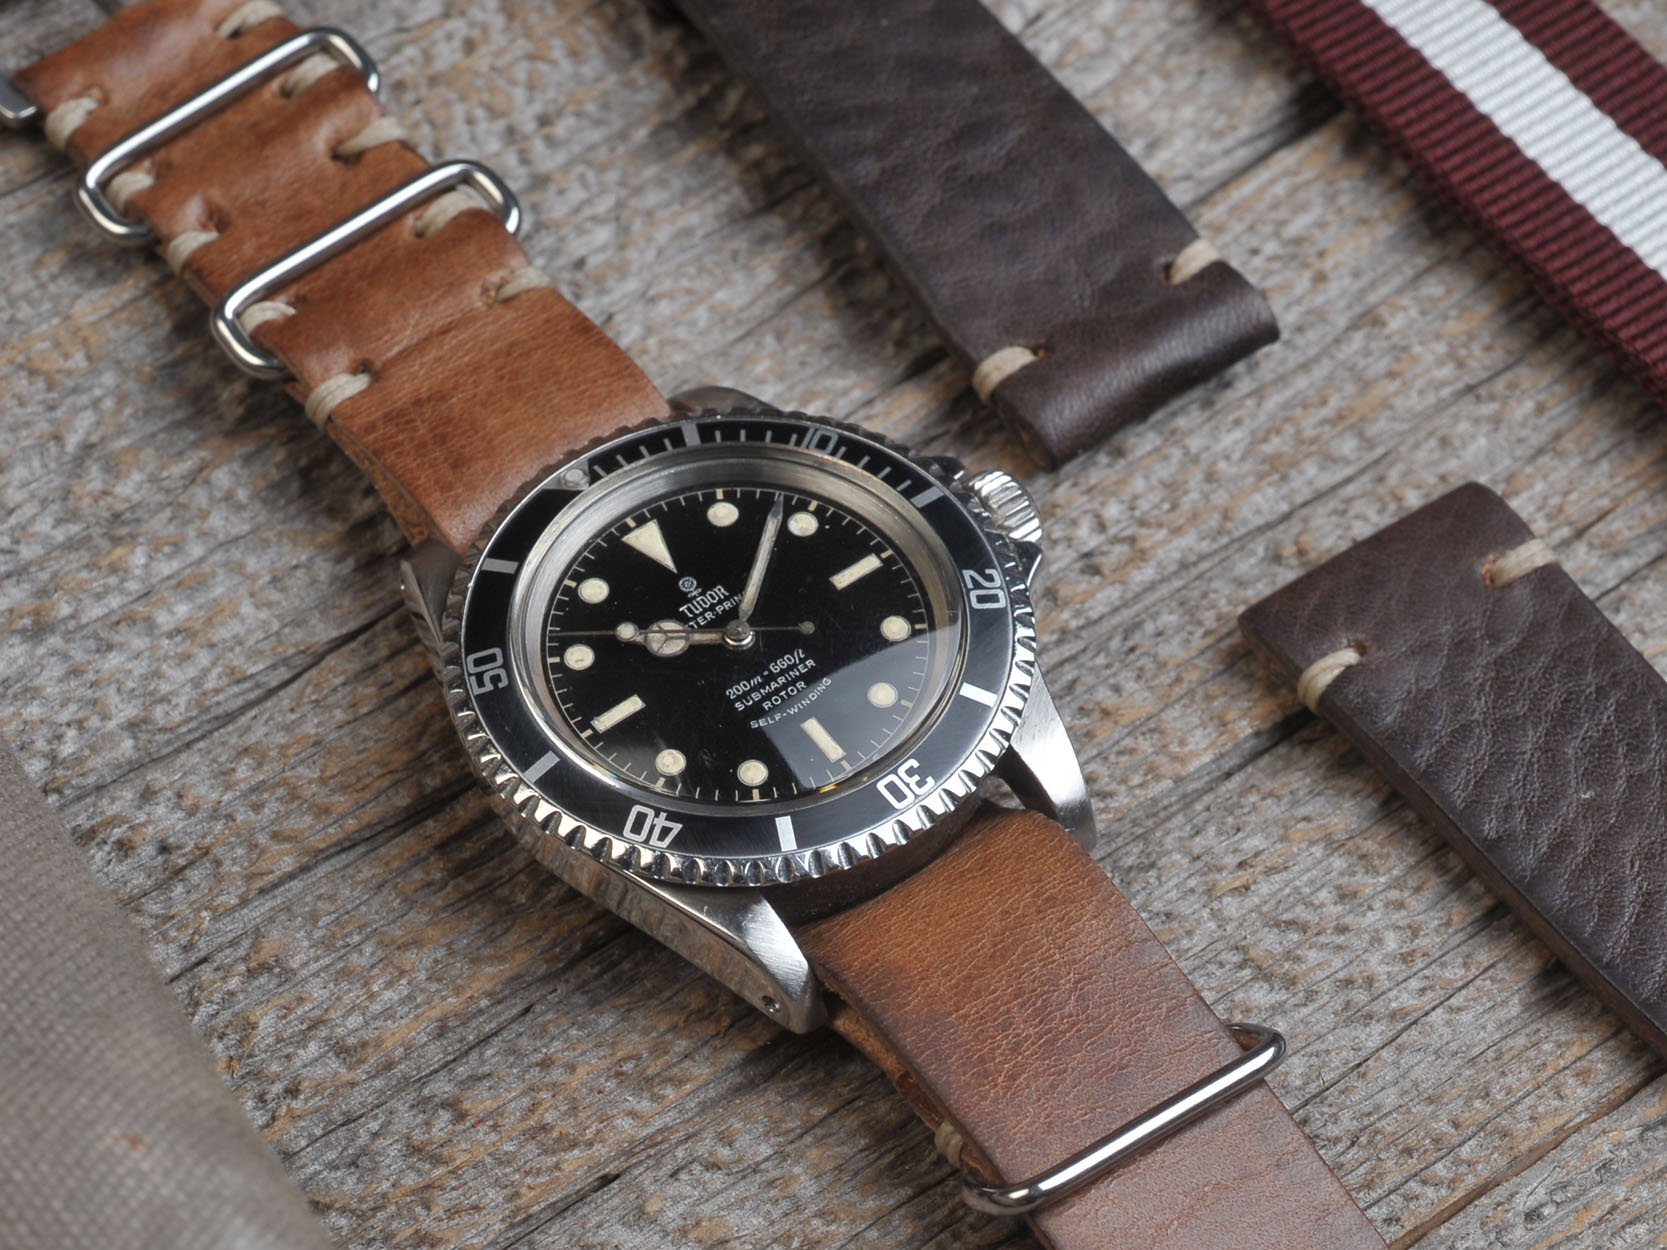 B&S Tudor W-23 7928 Ross 10